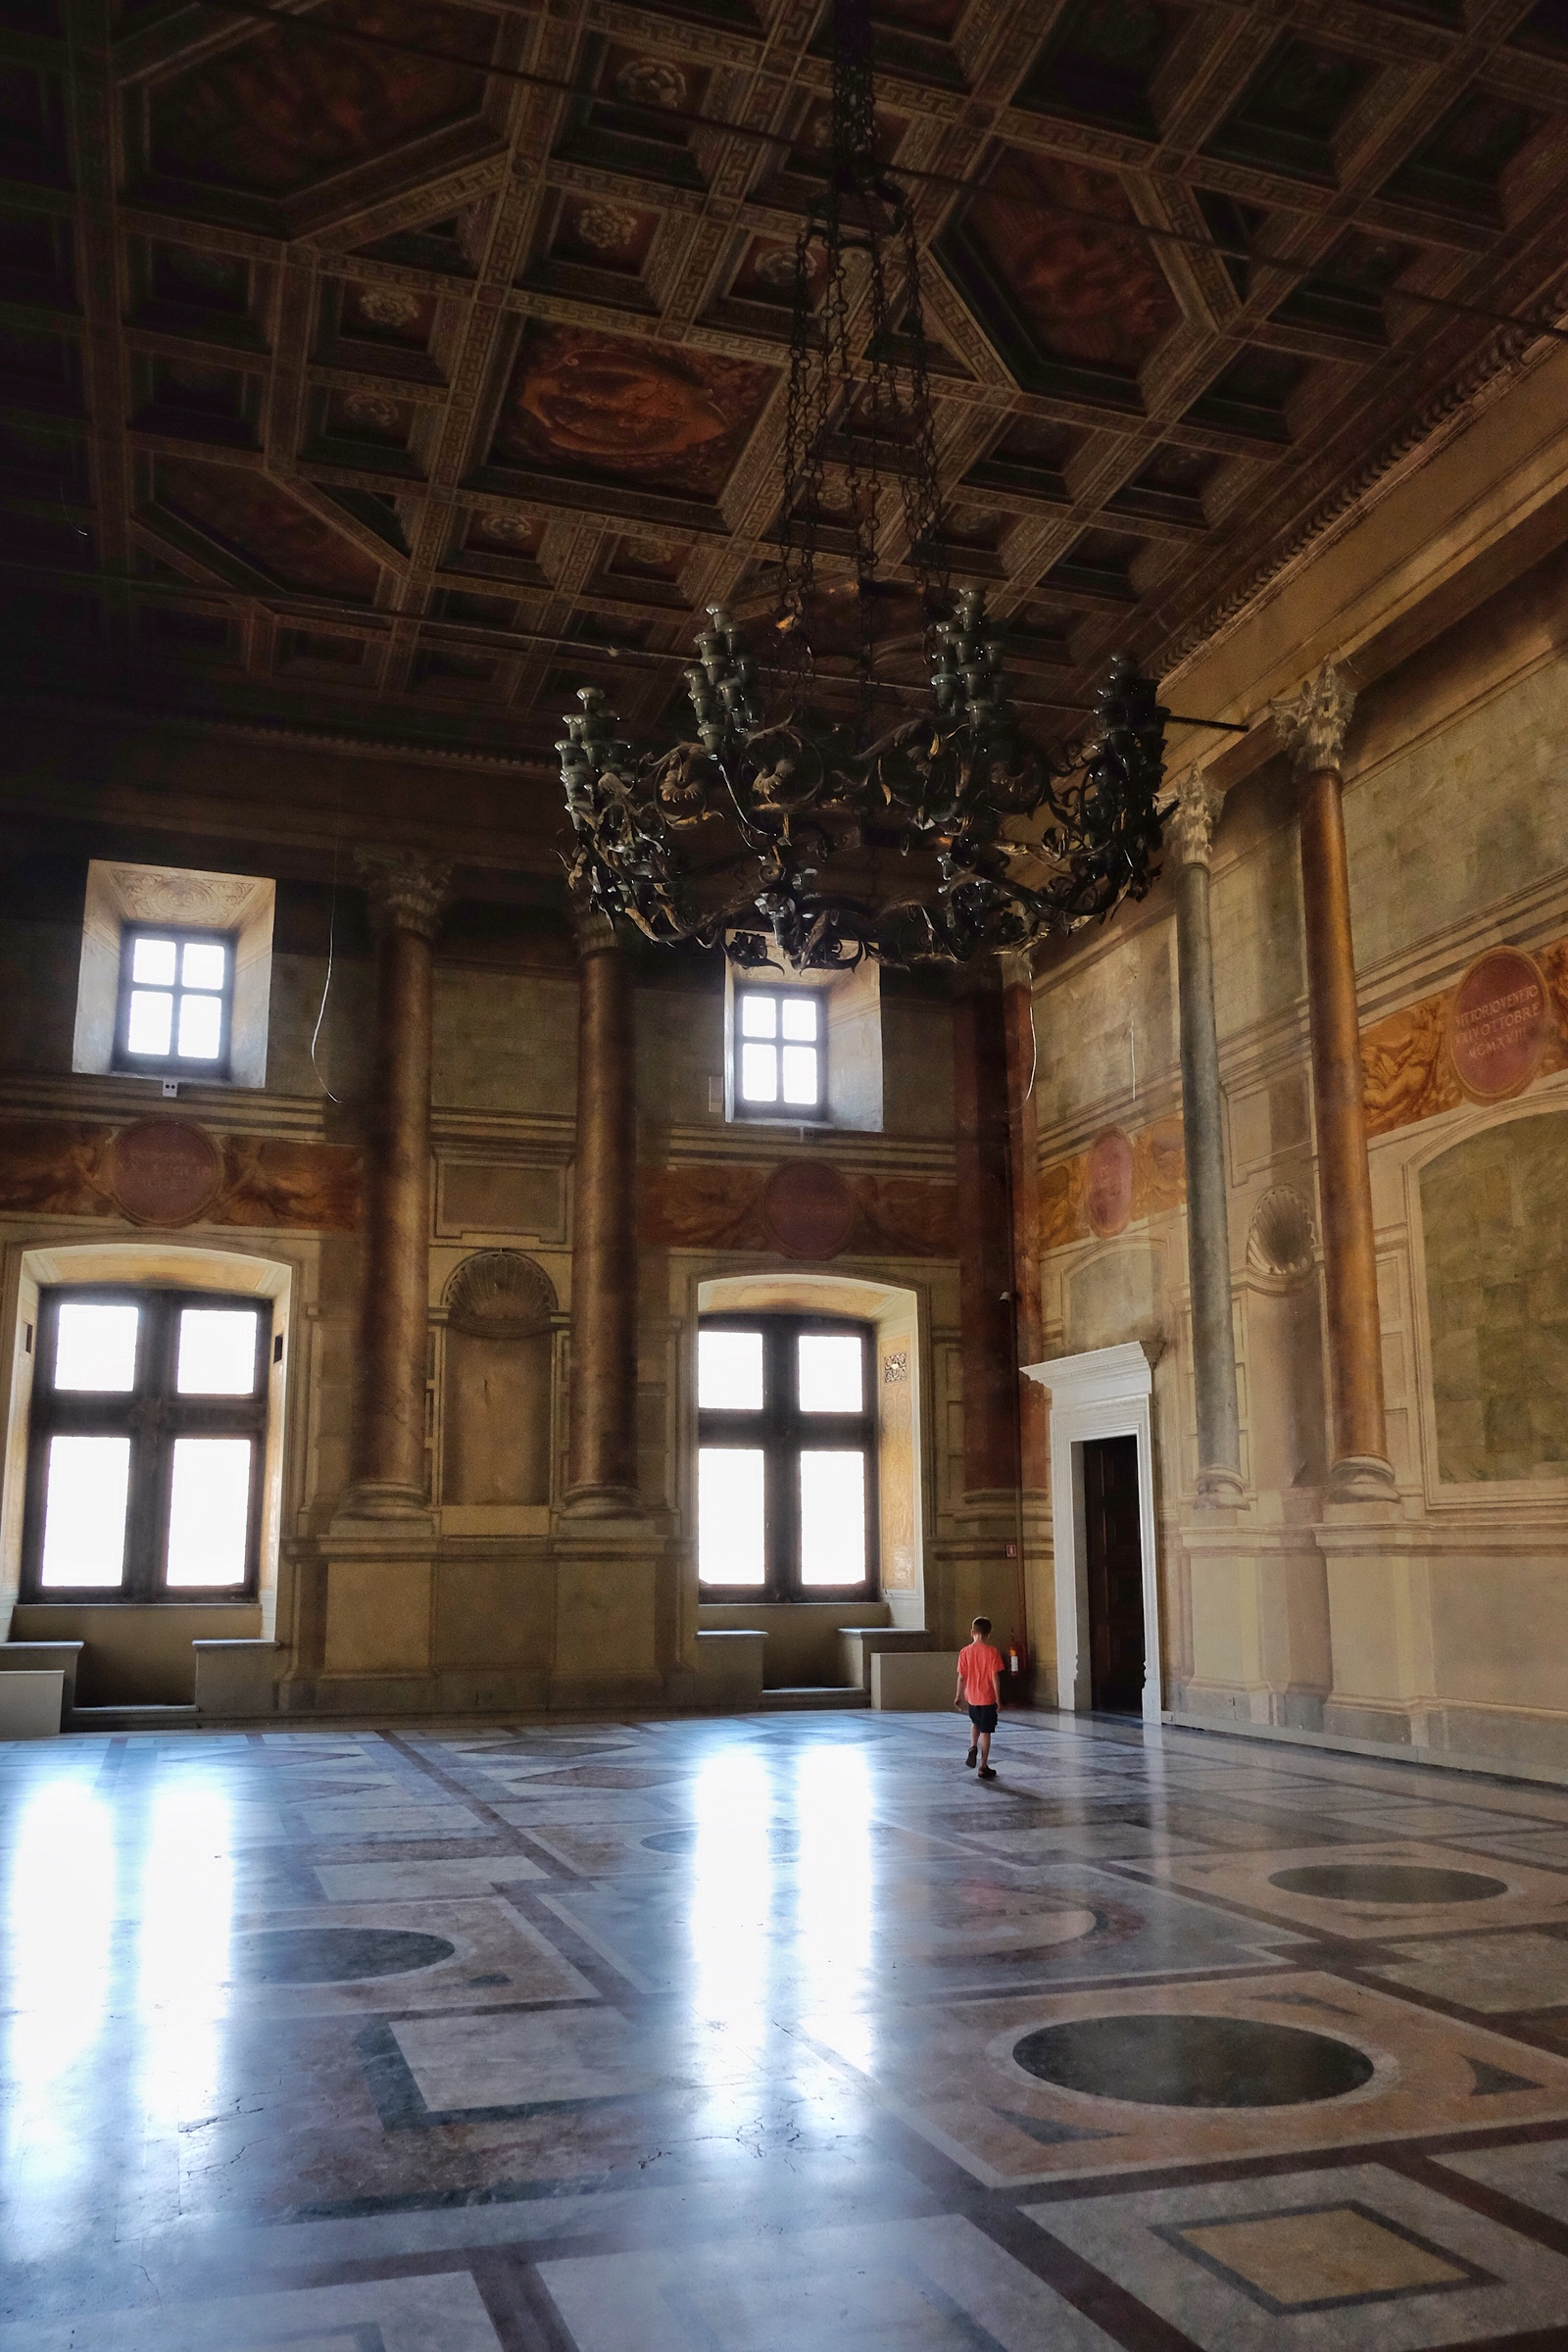 Rowan strolling through one of the gorgeous rooms in Palazzo Venezia.